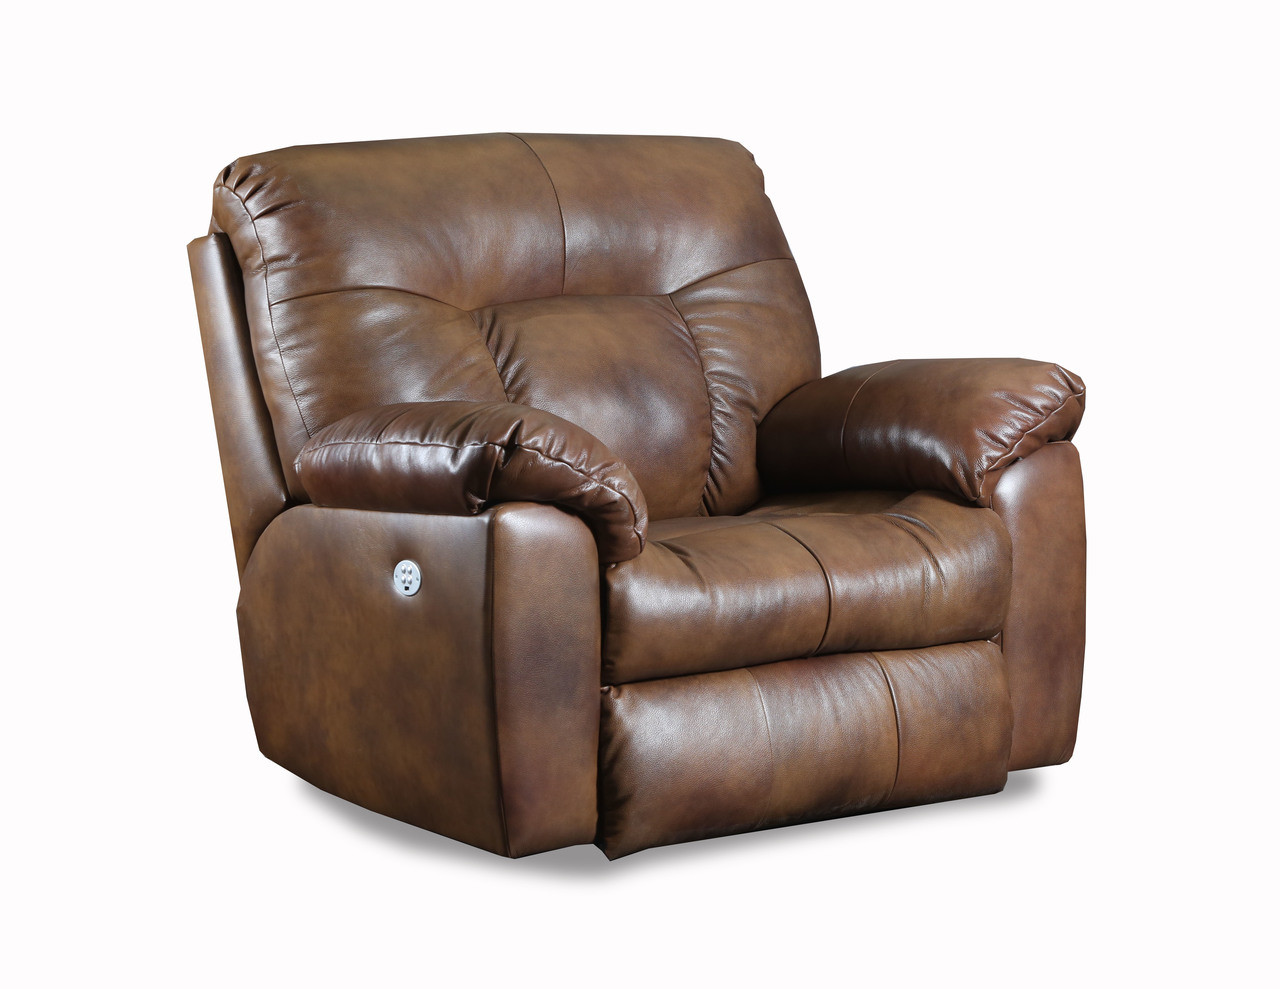 Genial Big Shot Custom Reclining Chair And A Half W/ Adjustable Headrest (Leather)  | Southern Motion